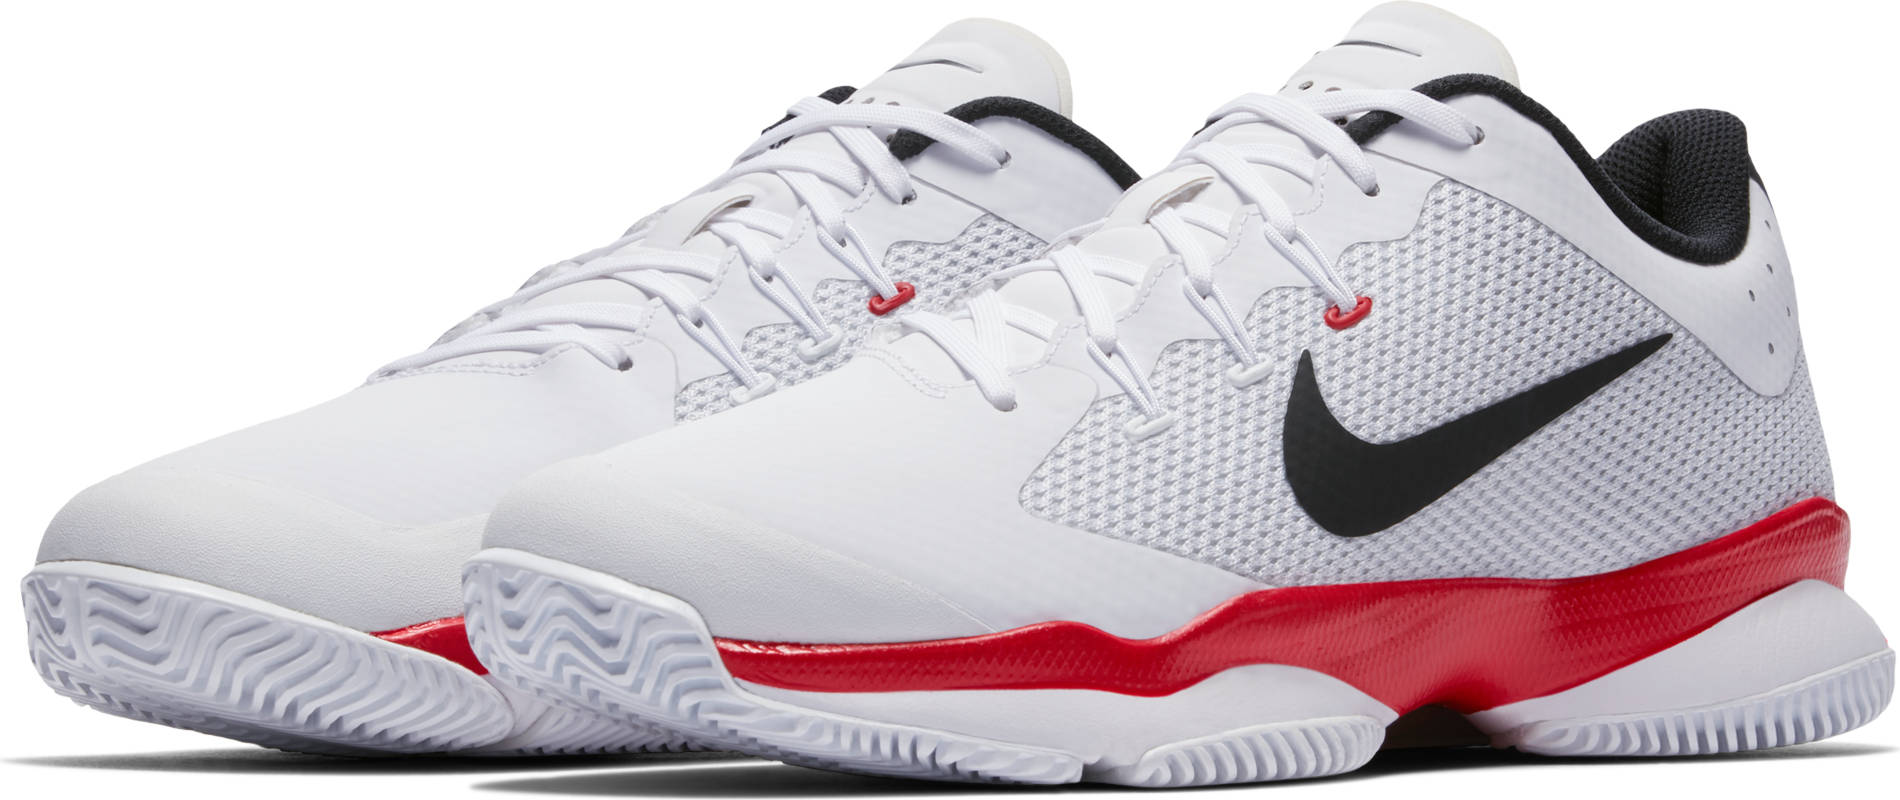 Men's Nike Air Zoom Ultra Tennis Shoe Nike by Nike